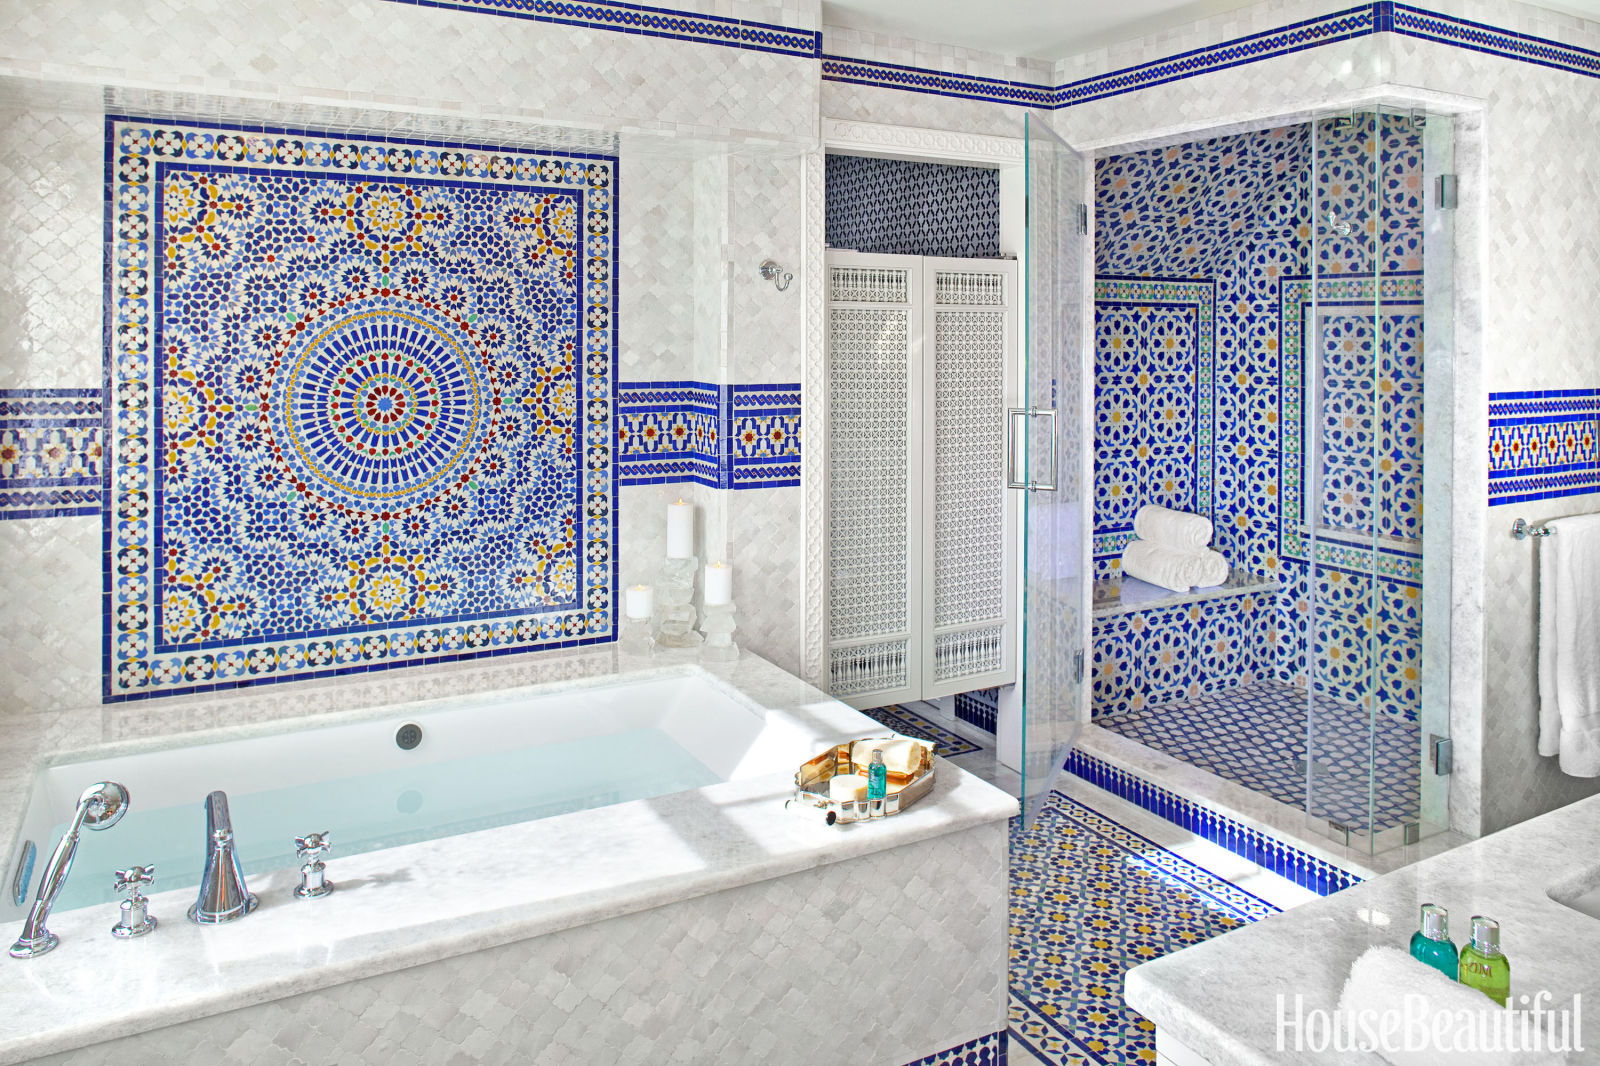 Bathroom Tile Ideas Blue And White 45 bathroom tile design ideas - tile backsplash and floor designs